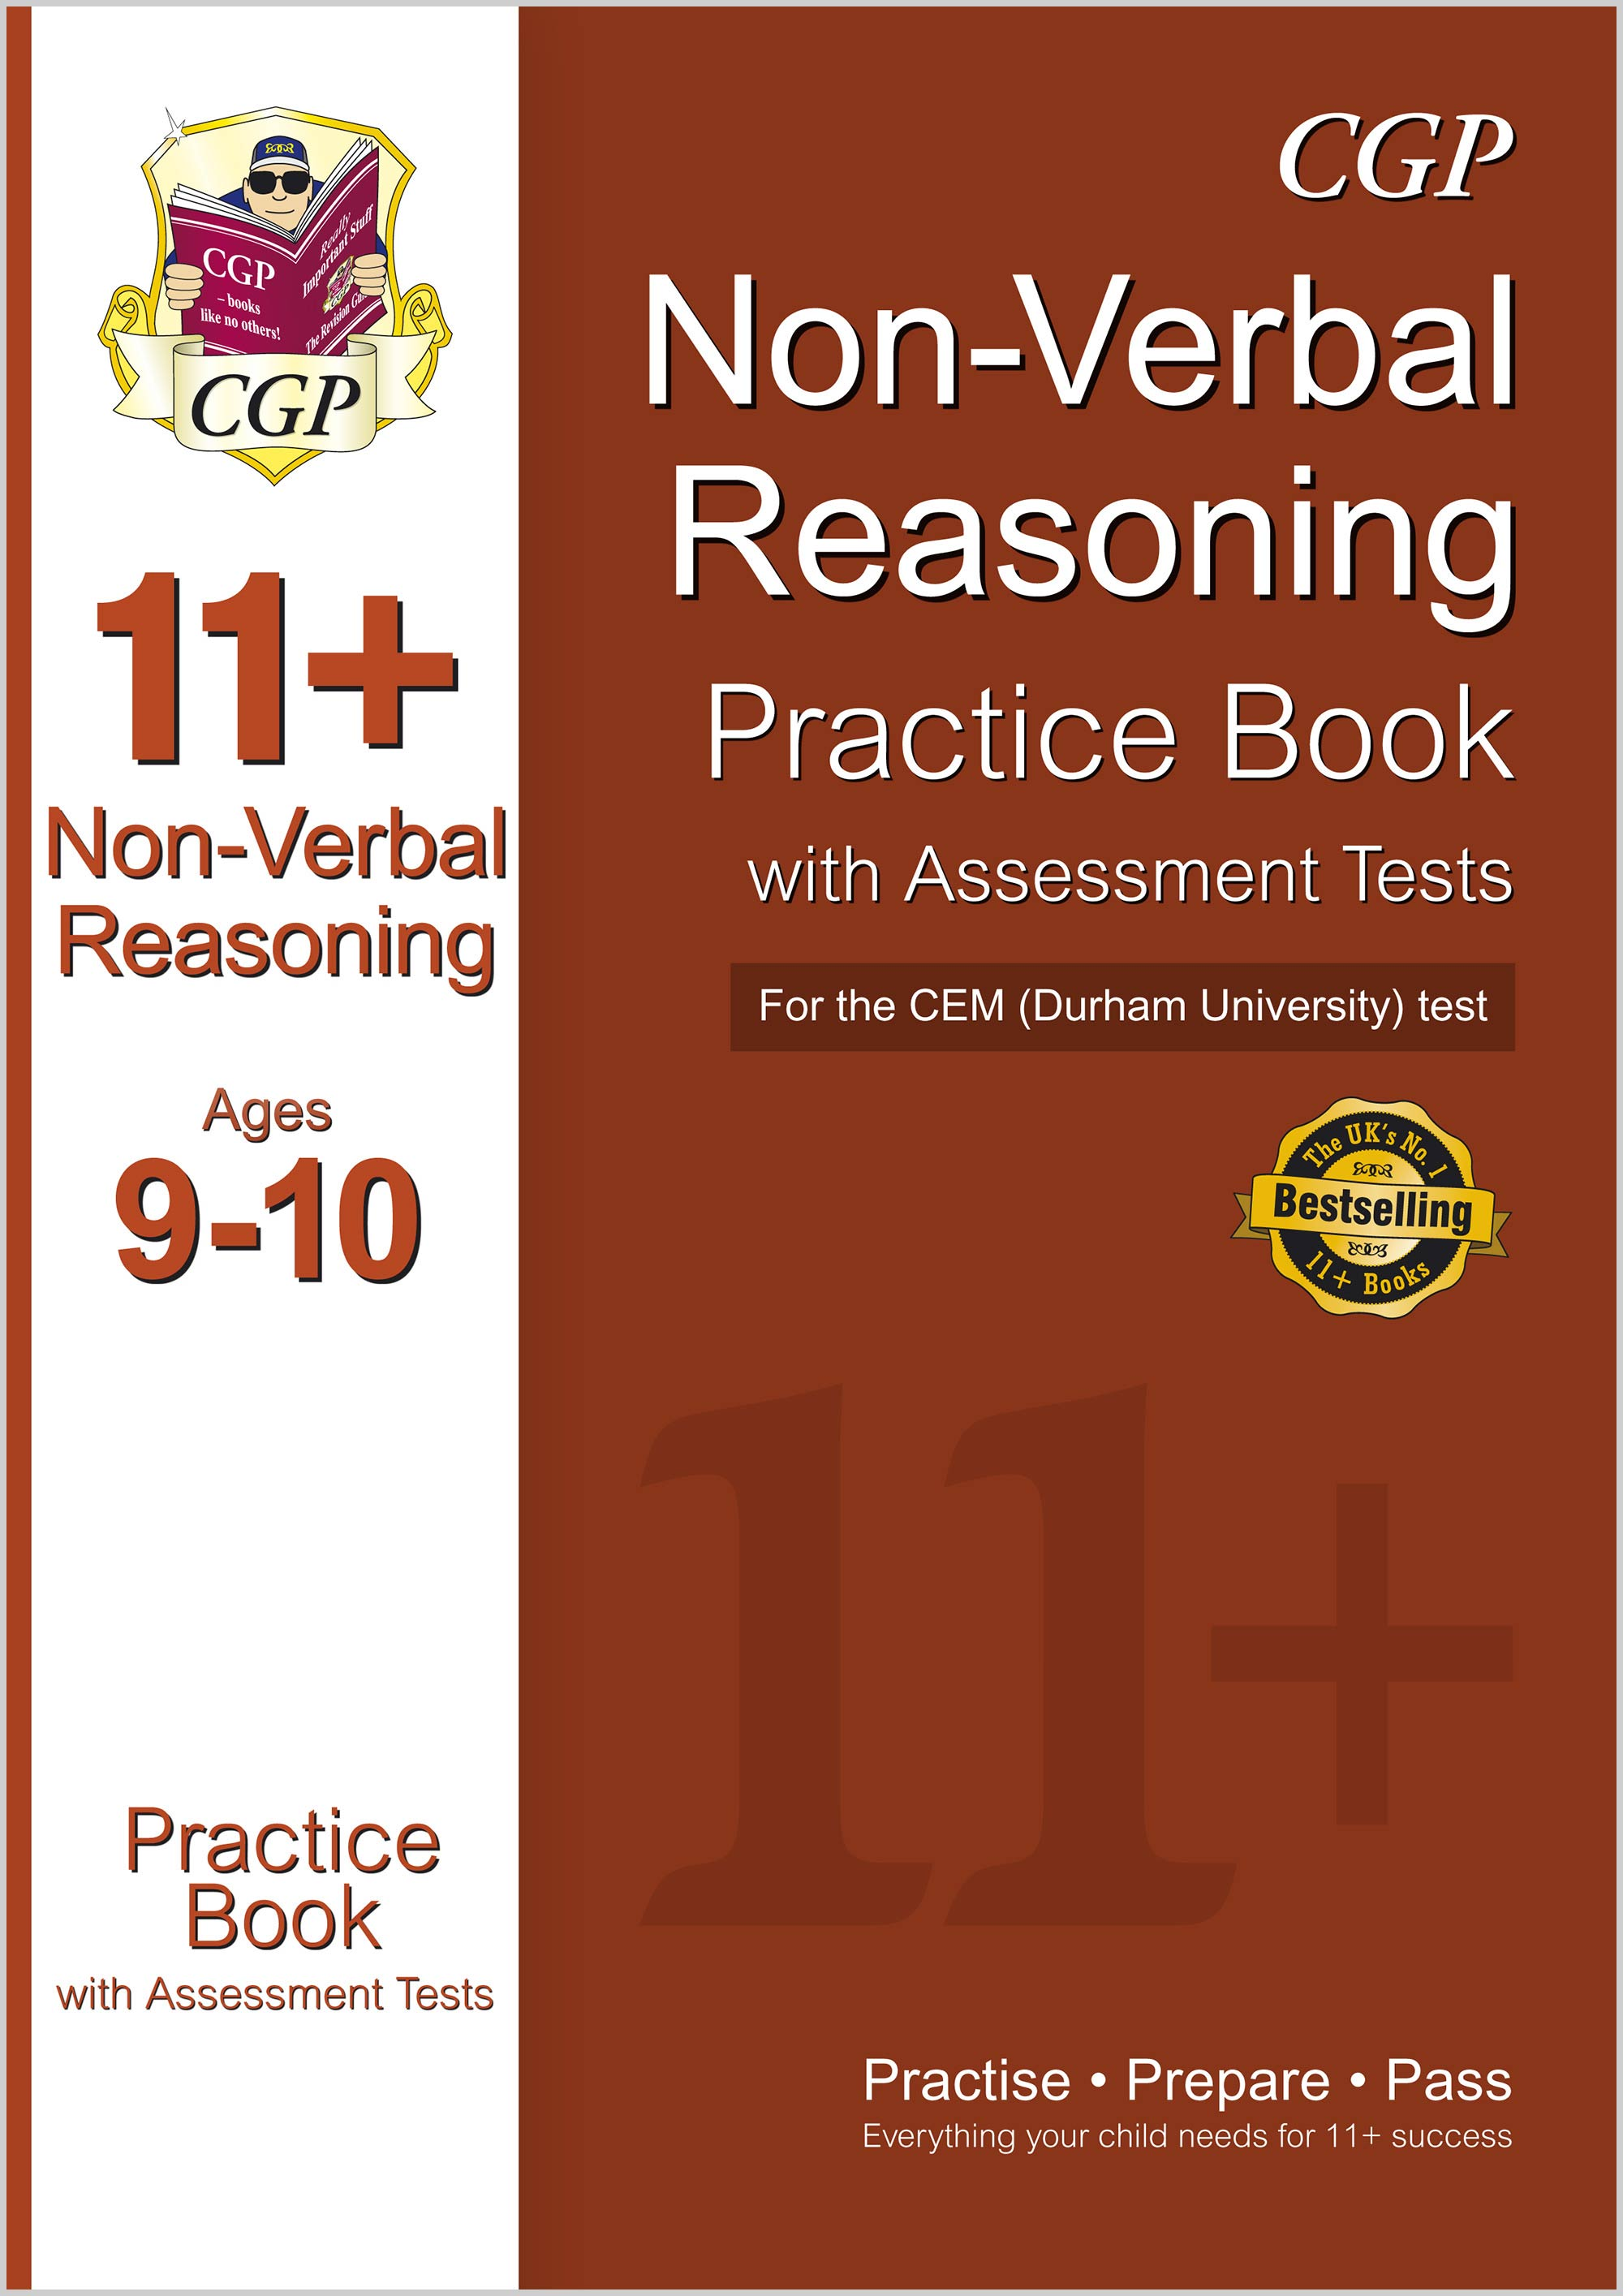 N5QDE1 - 11+ Non-Verbal Reasoning Practice Book with Assessment Tests (Ages 9-10) for the CEM Test